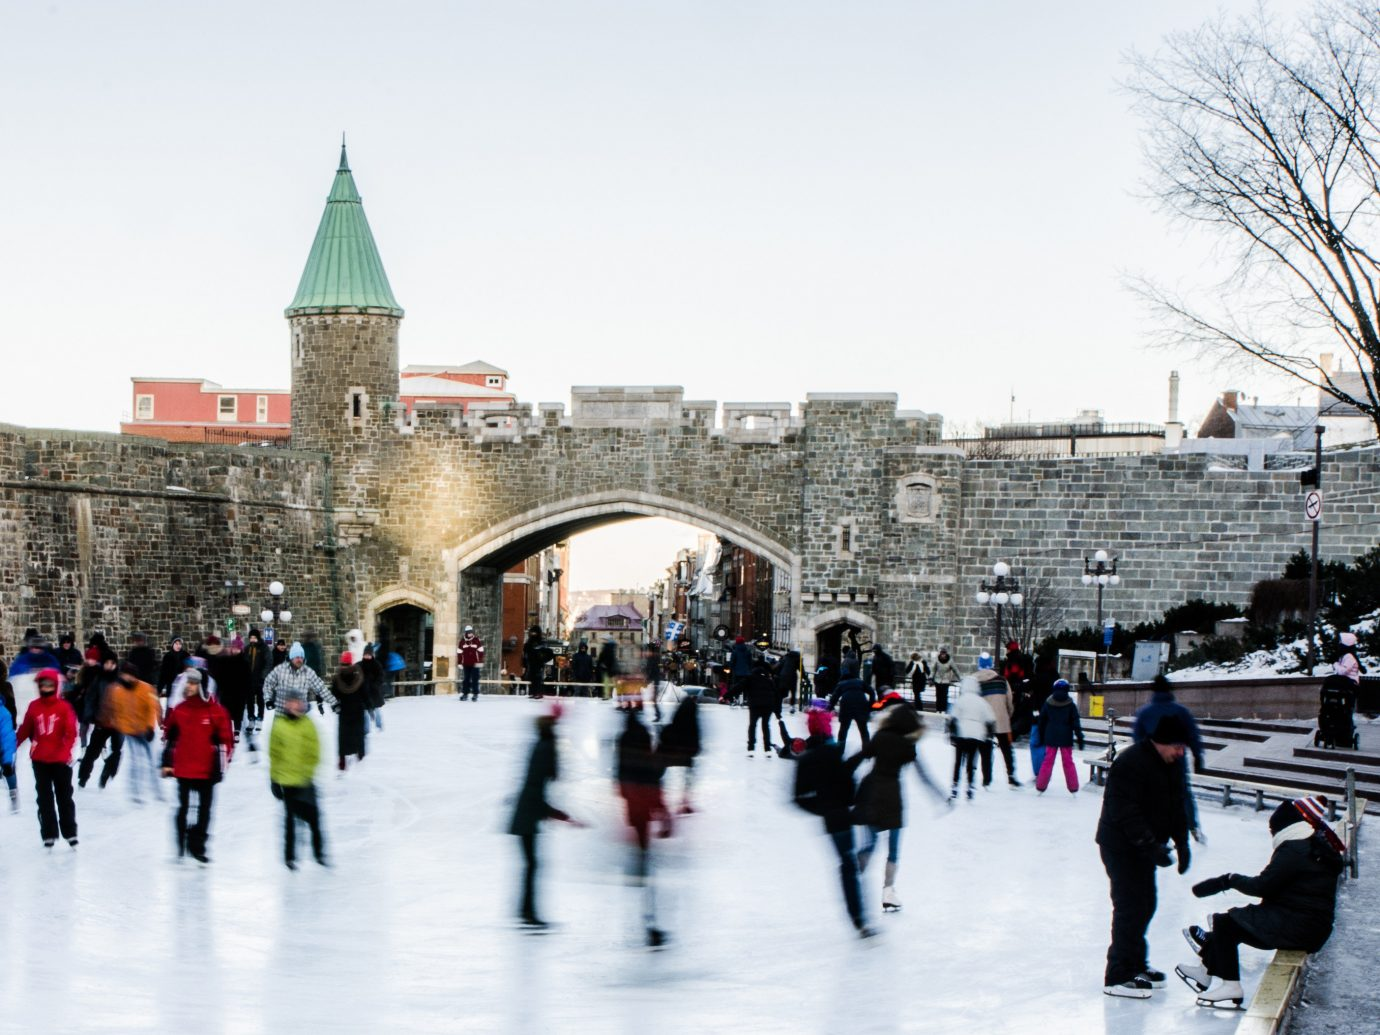 Quebec City outdoor ice rink in winter